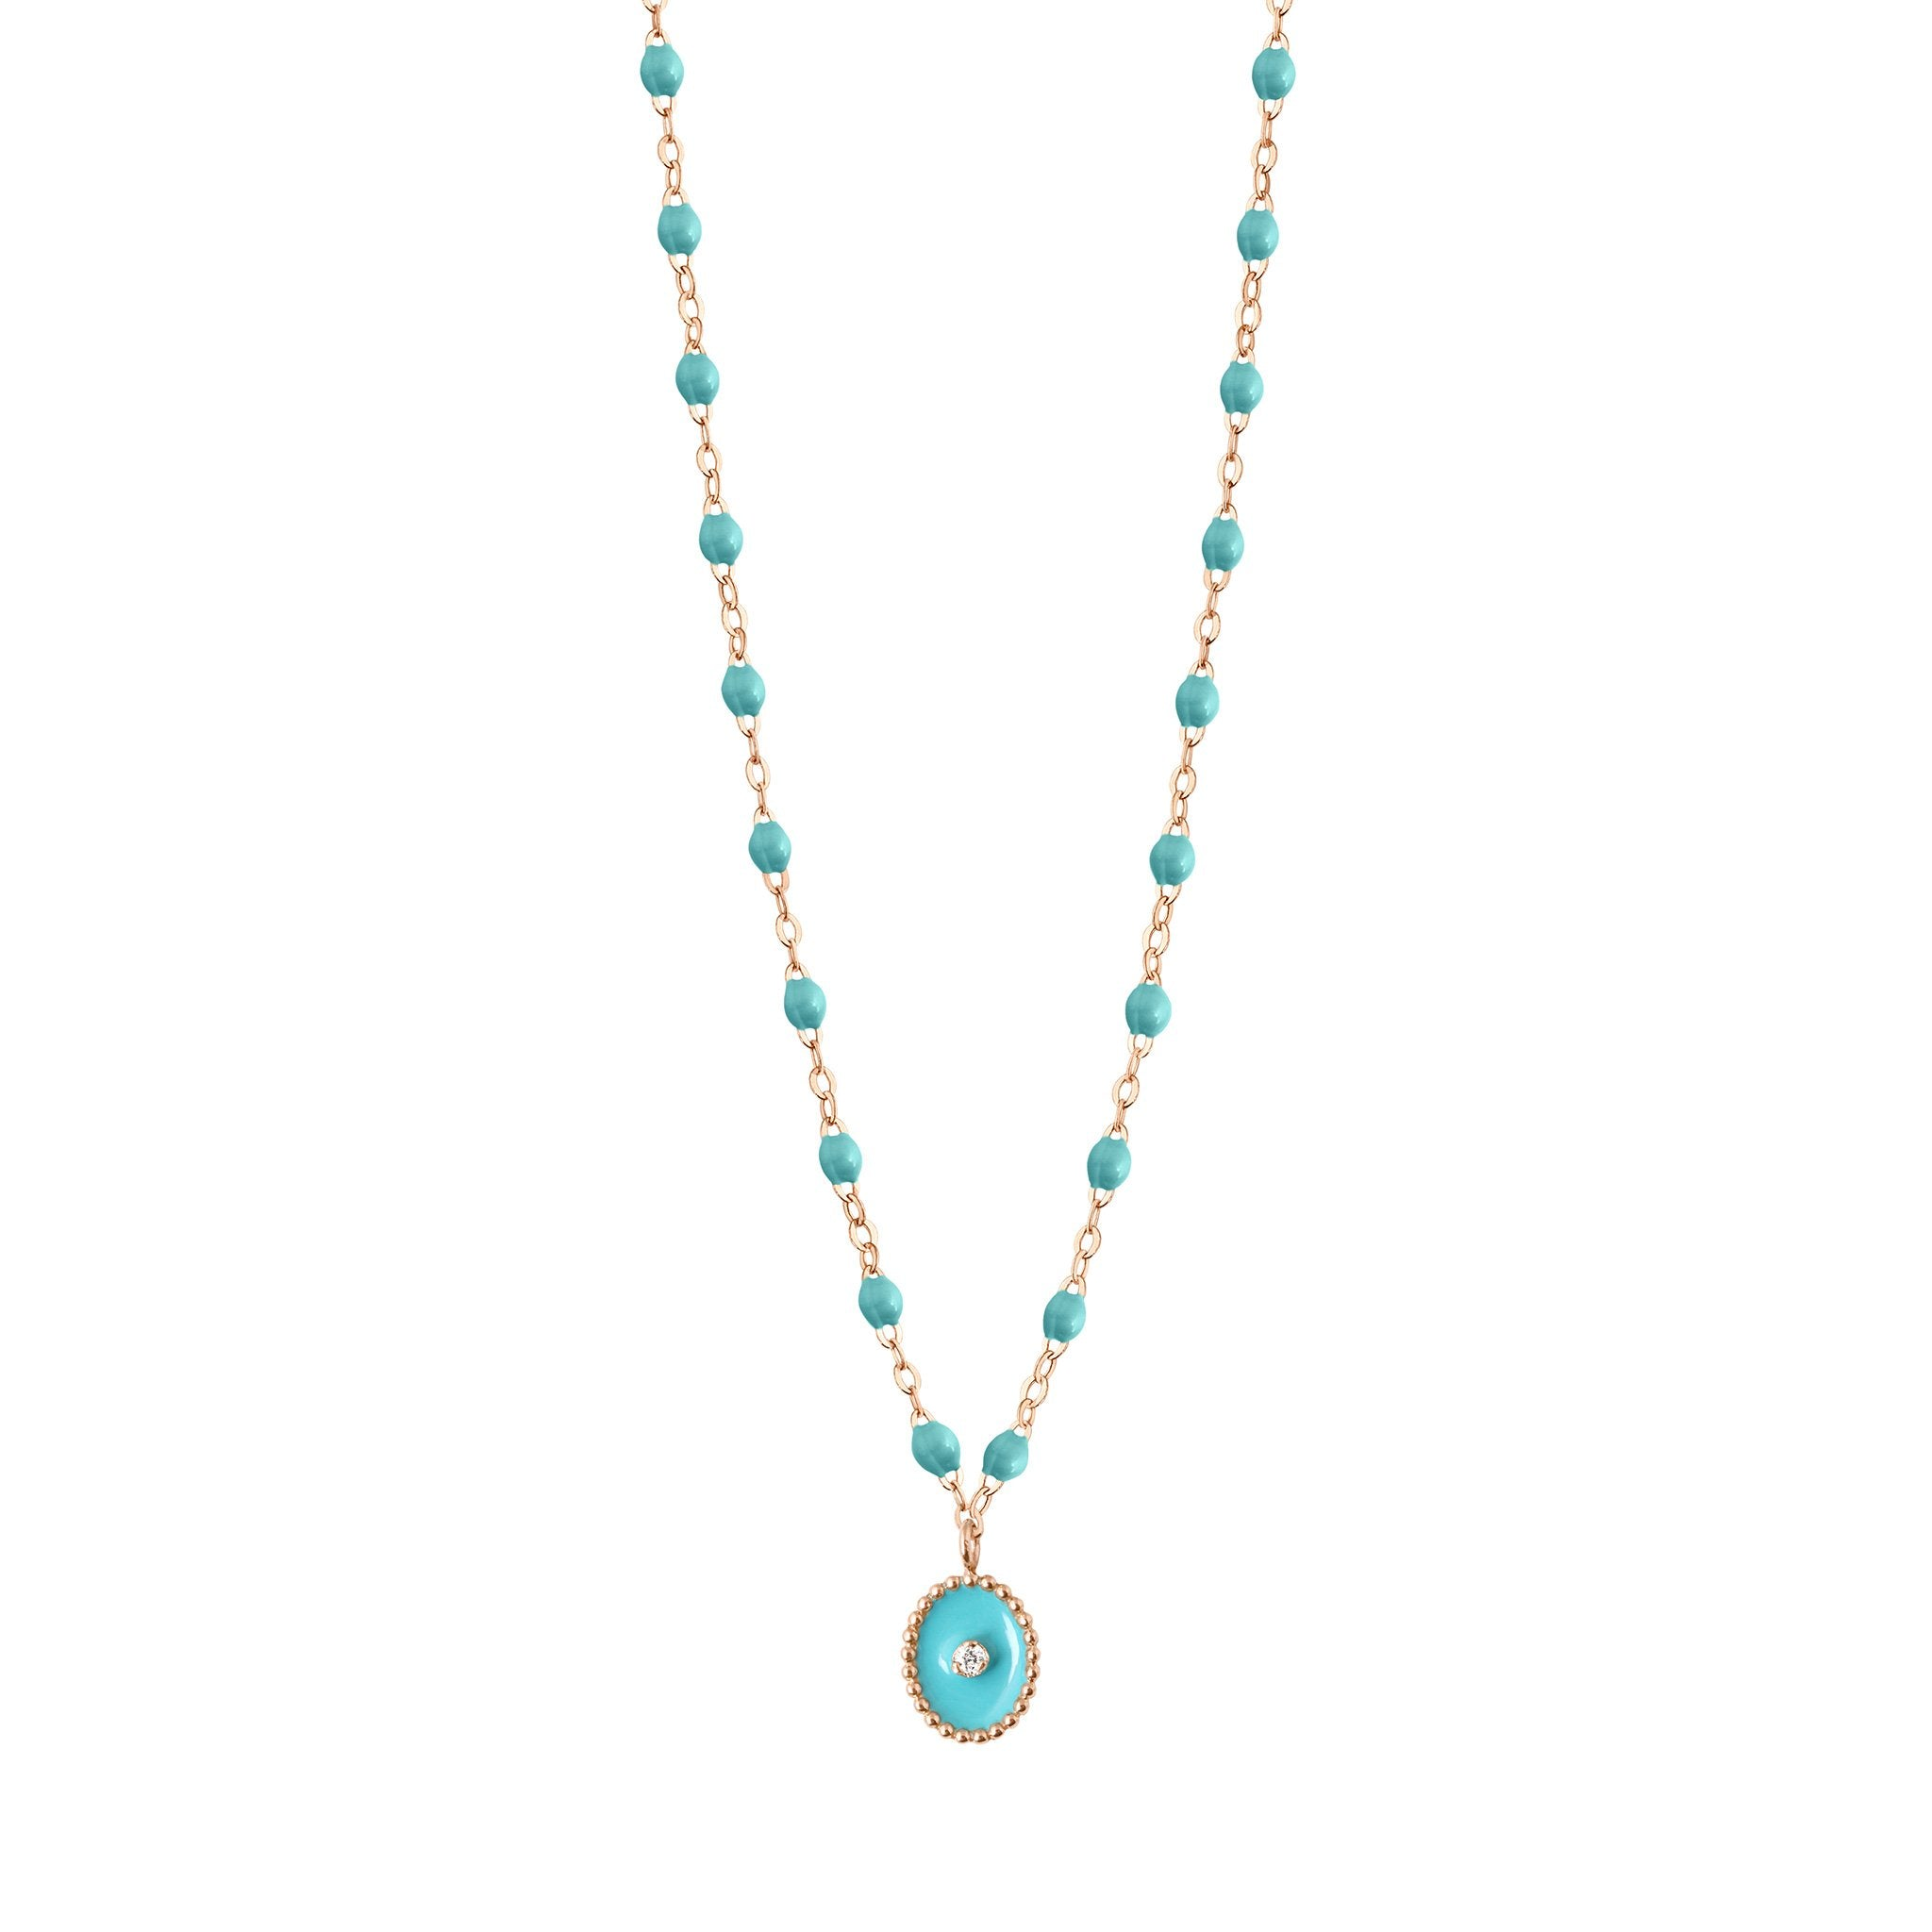 Gigi Clozeau - North Star Classic Gigi Turquoise Green diamonds necklace, Rose Gold, 16.5""